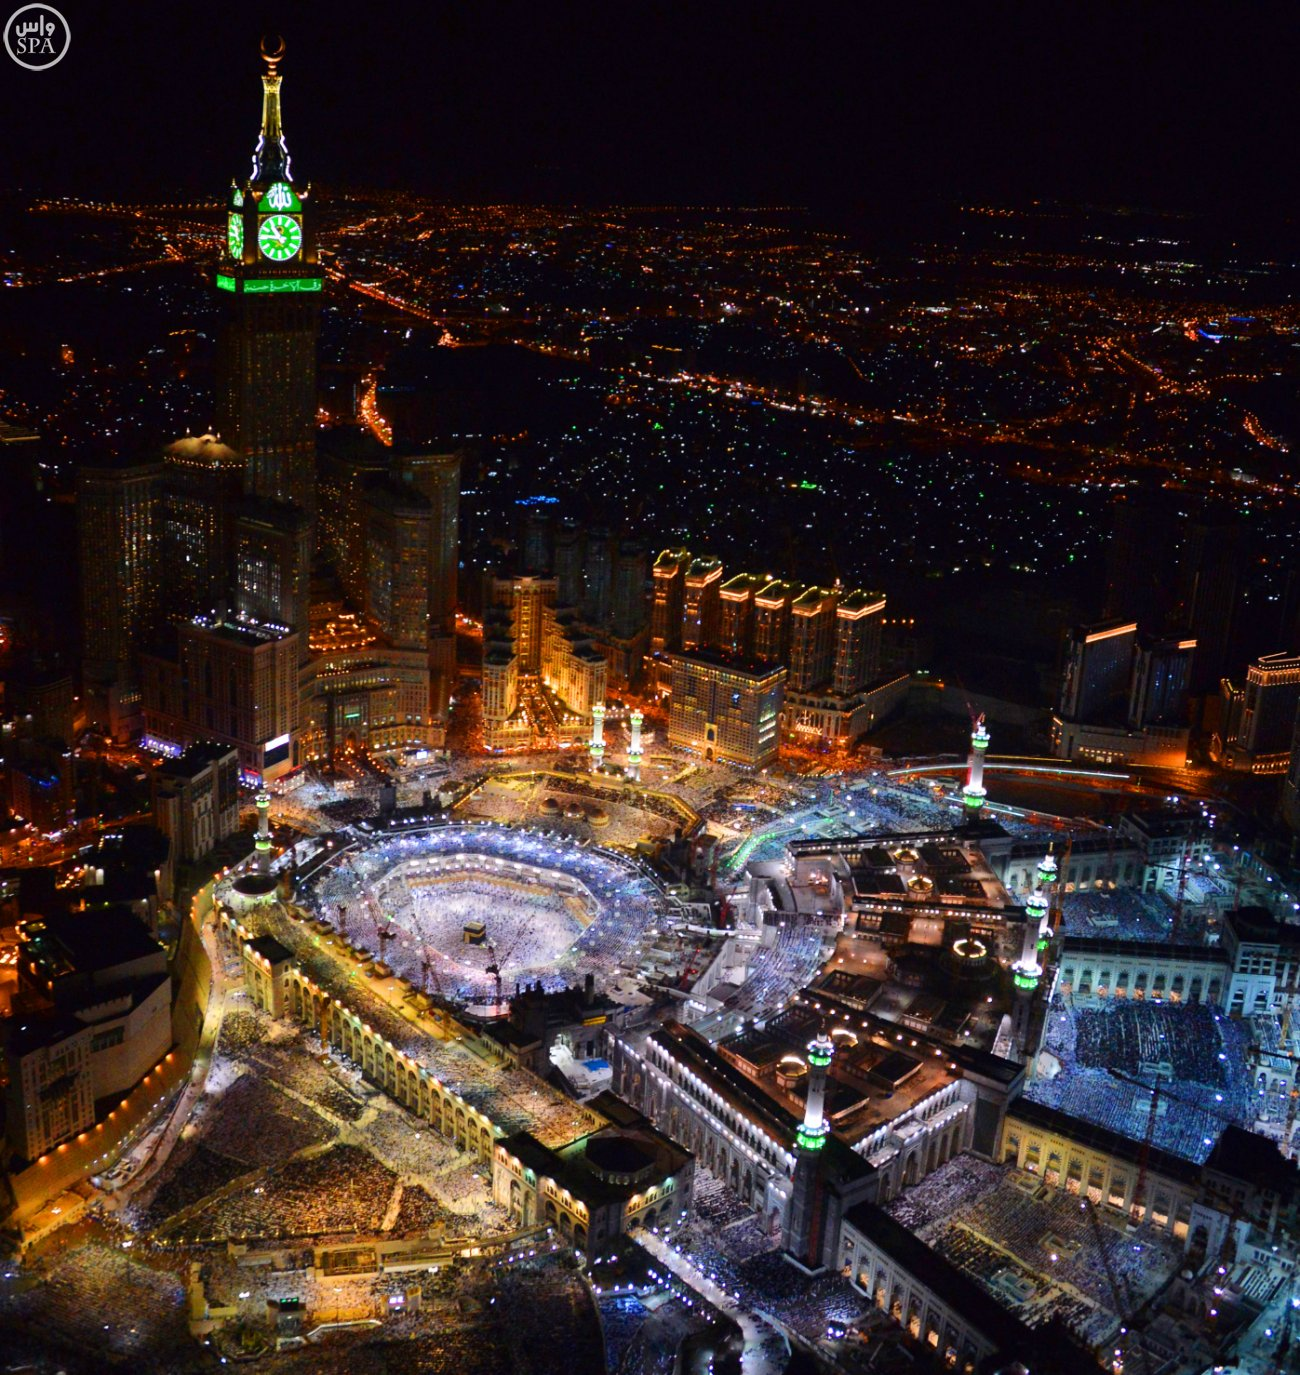 10 Astonishing Ideas To Spa Up Your Luxury White Bathroom: 10 Amazing Aerial Photos From Makkah Taken During The 27th